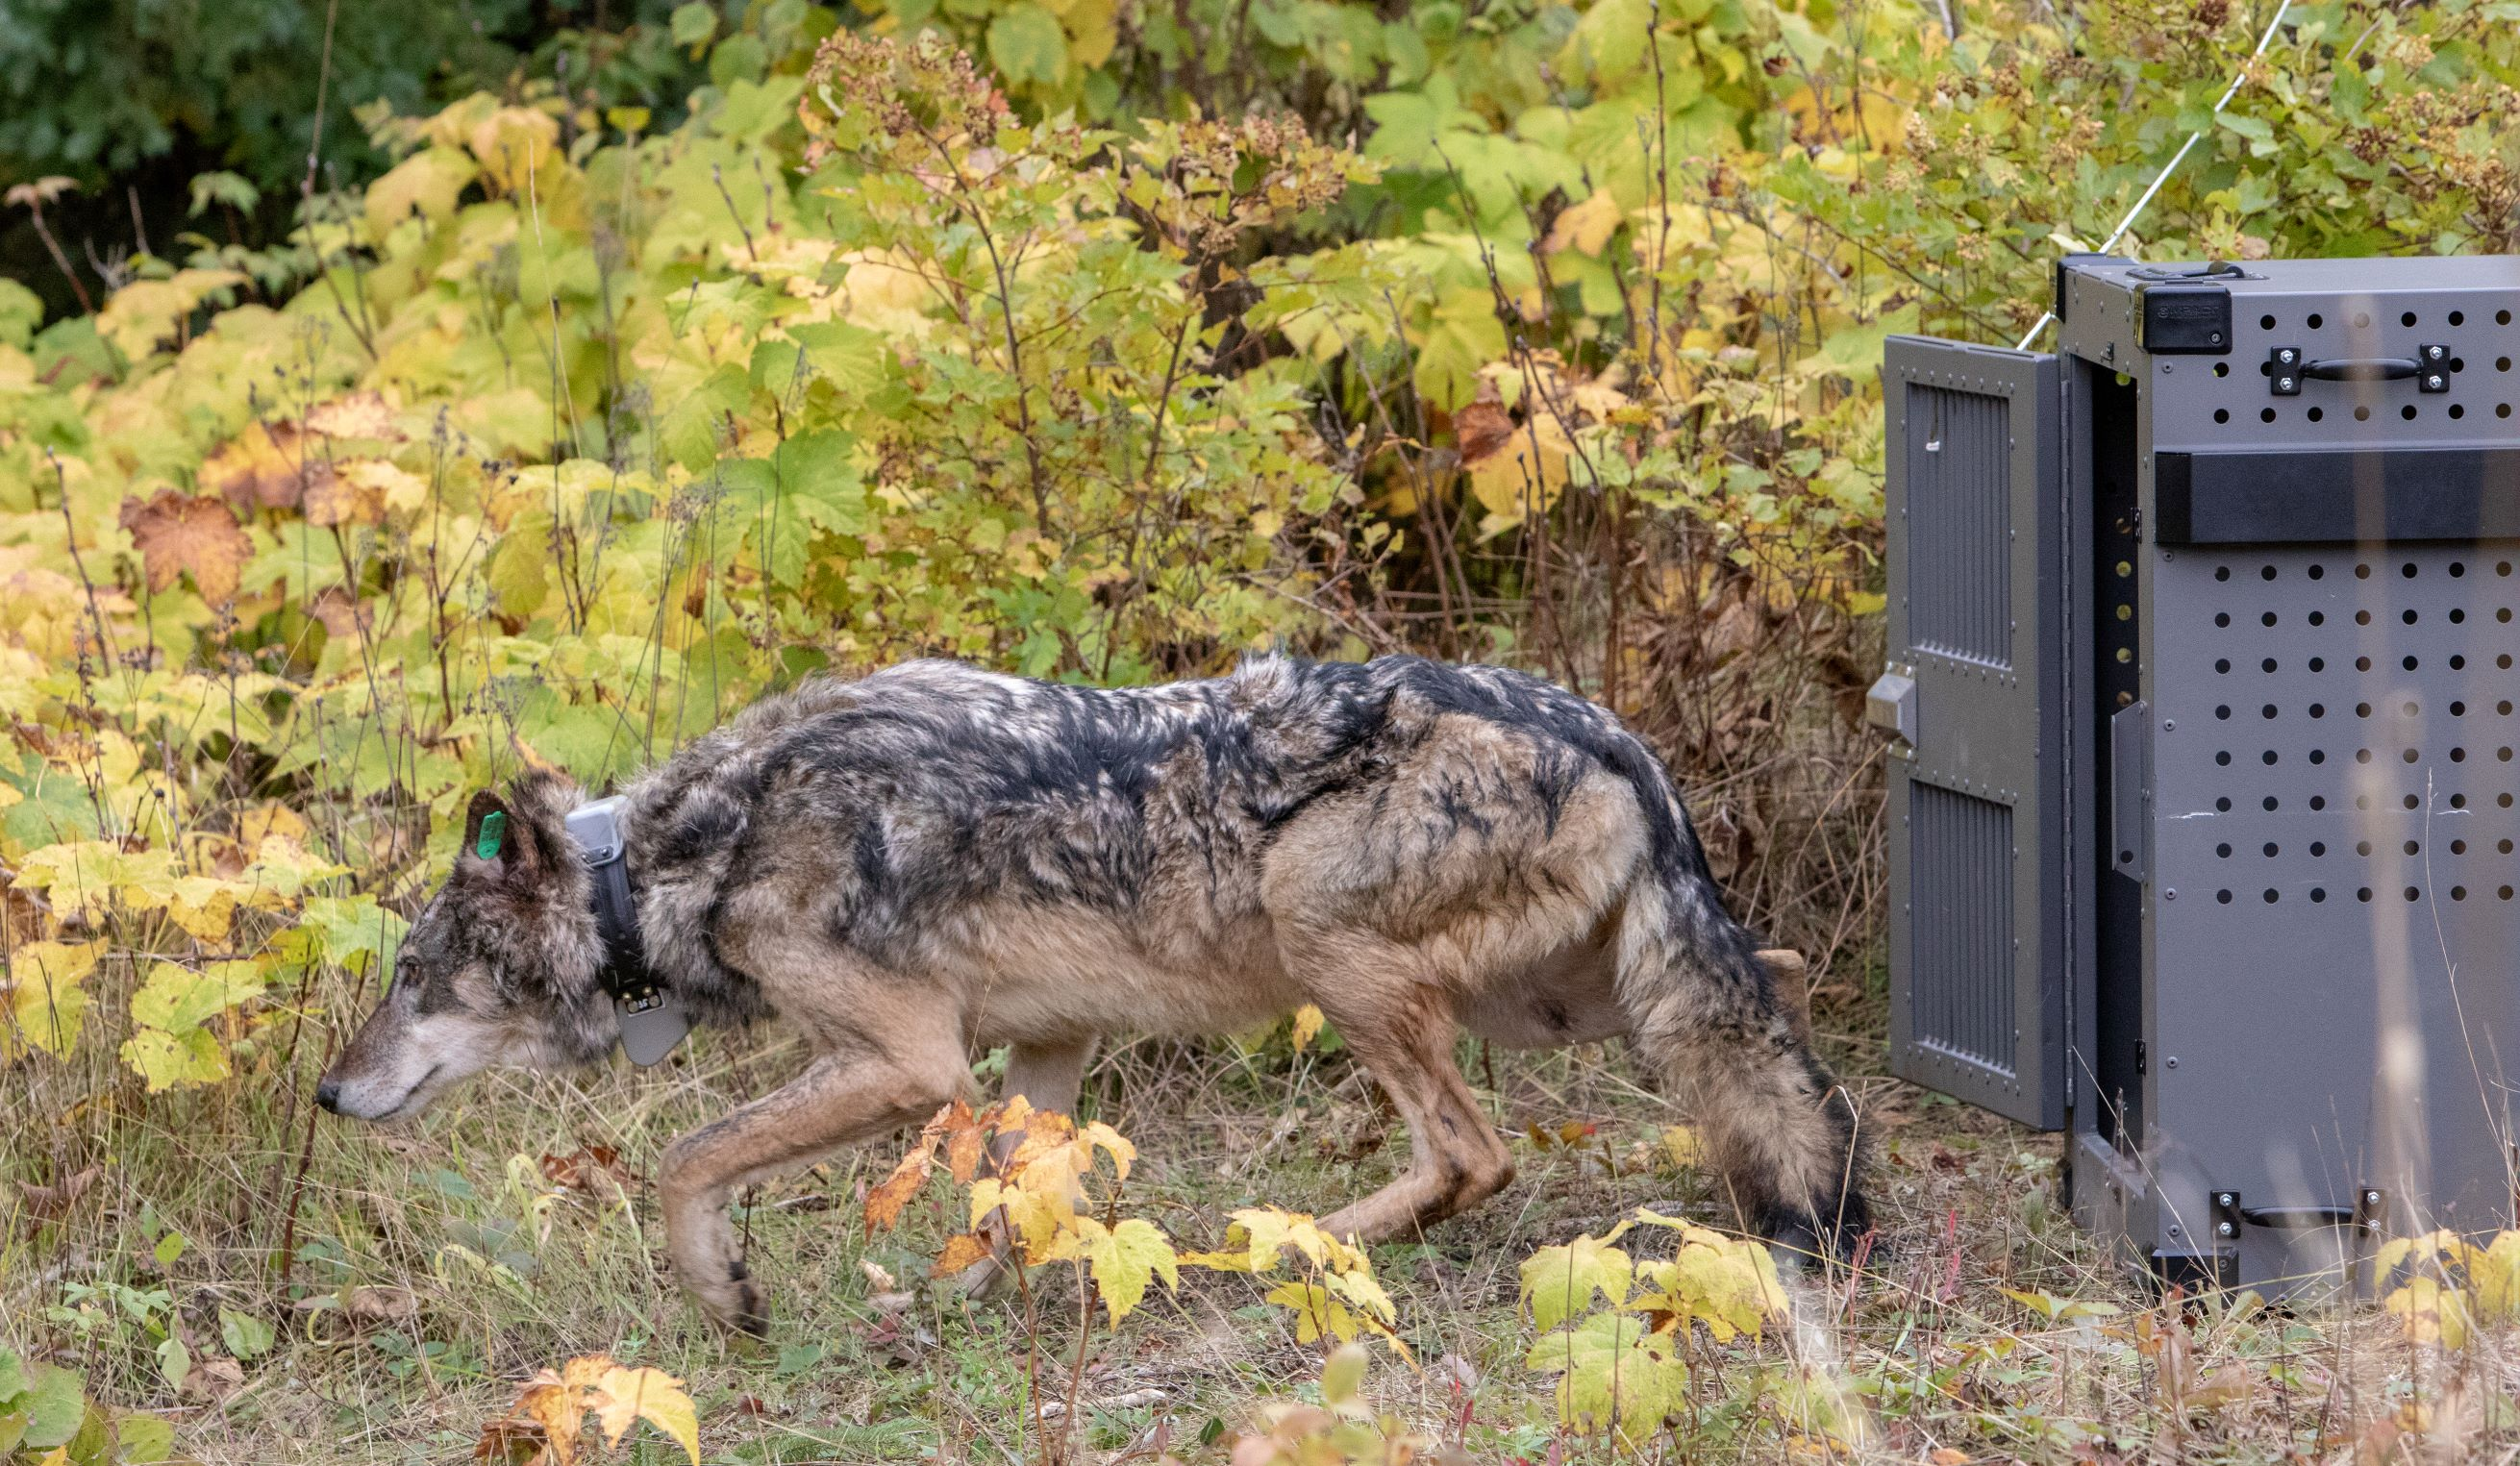 A wolf with dark coloration is shown mid-stride walking from a crate.